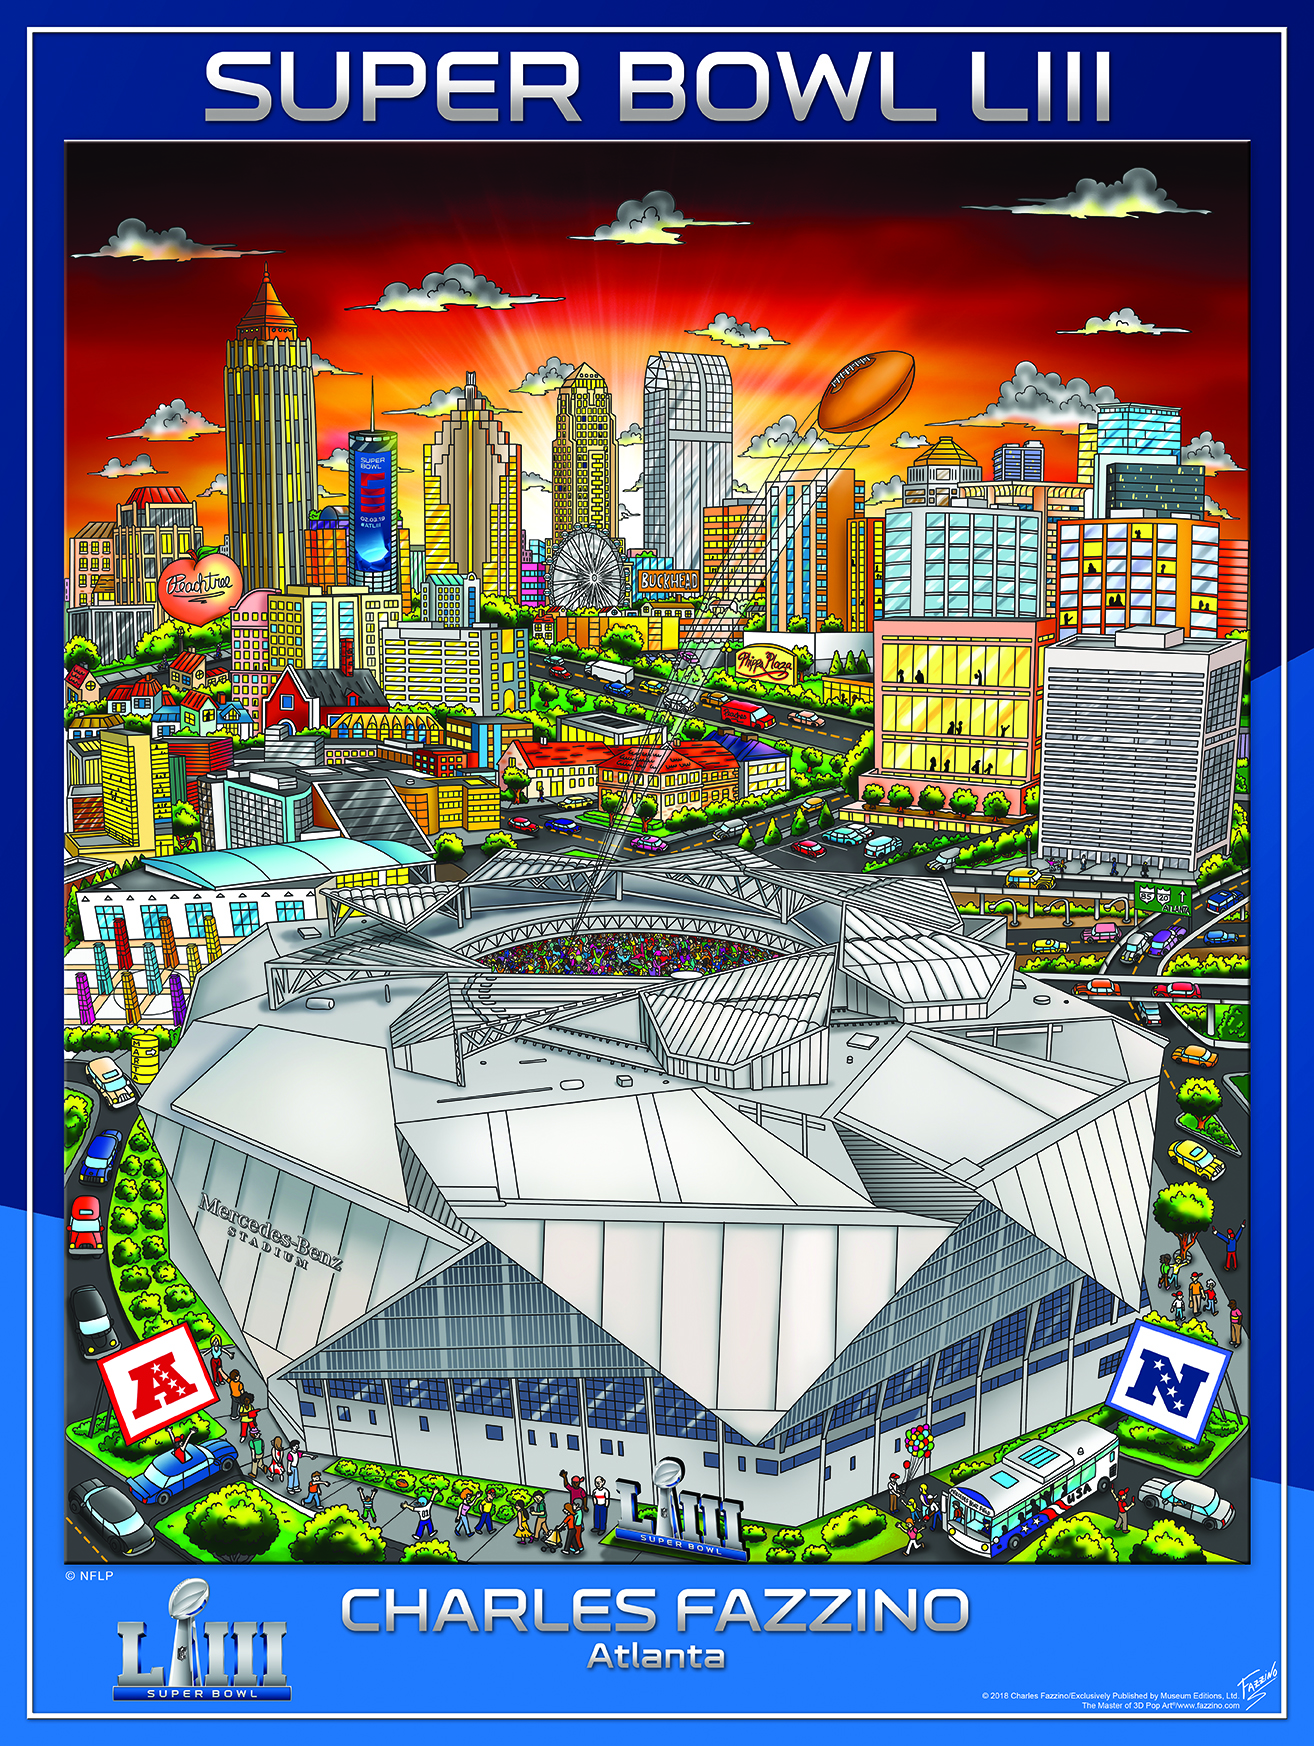 Super Bowl LIII Poster art by Charles Fazzino featuring the city of Atlanta and the Mercedez-Benz Stadium